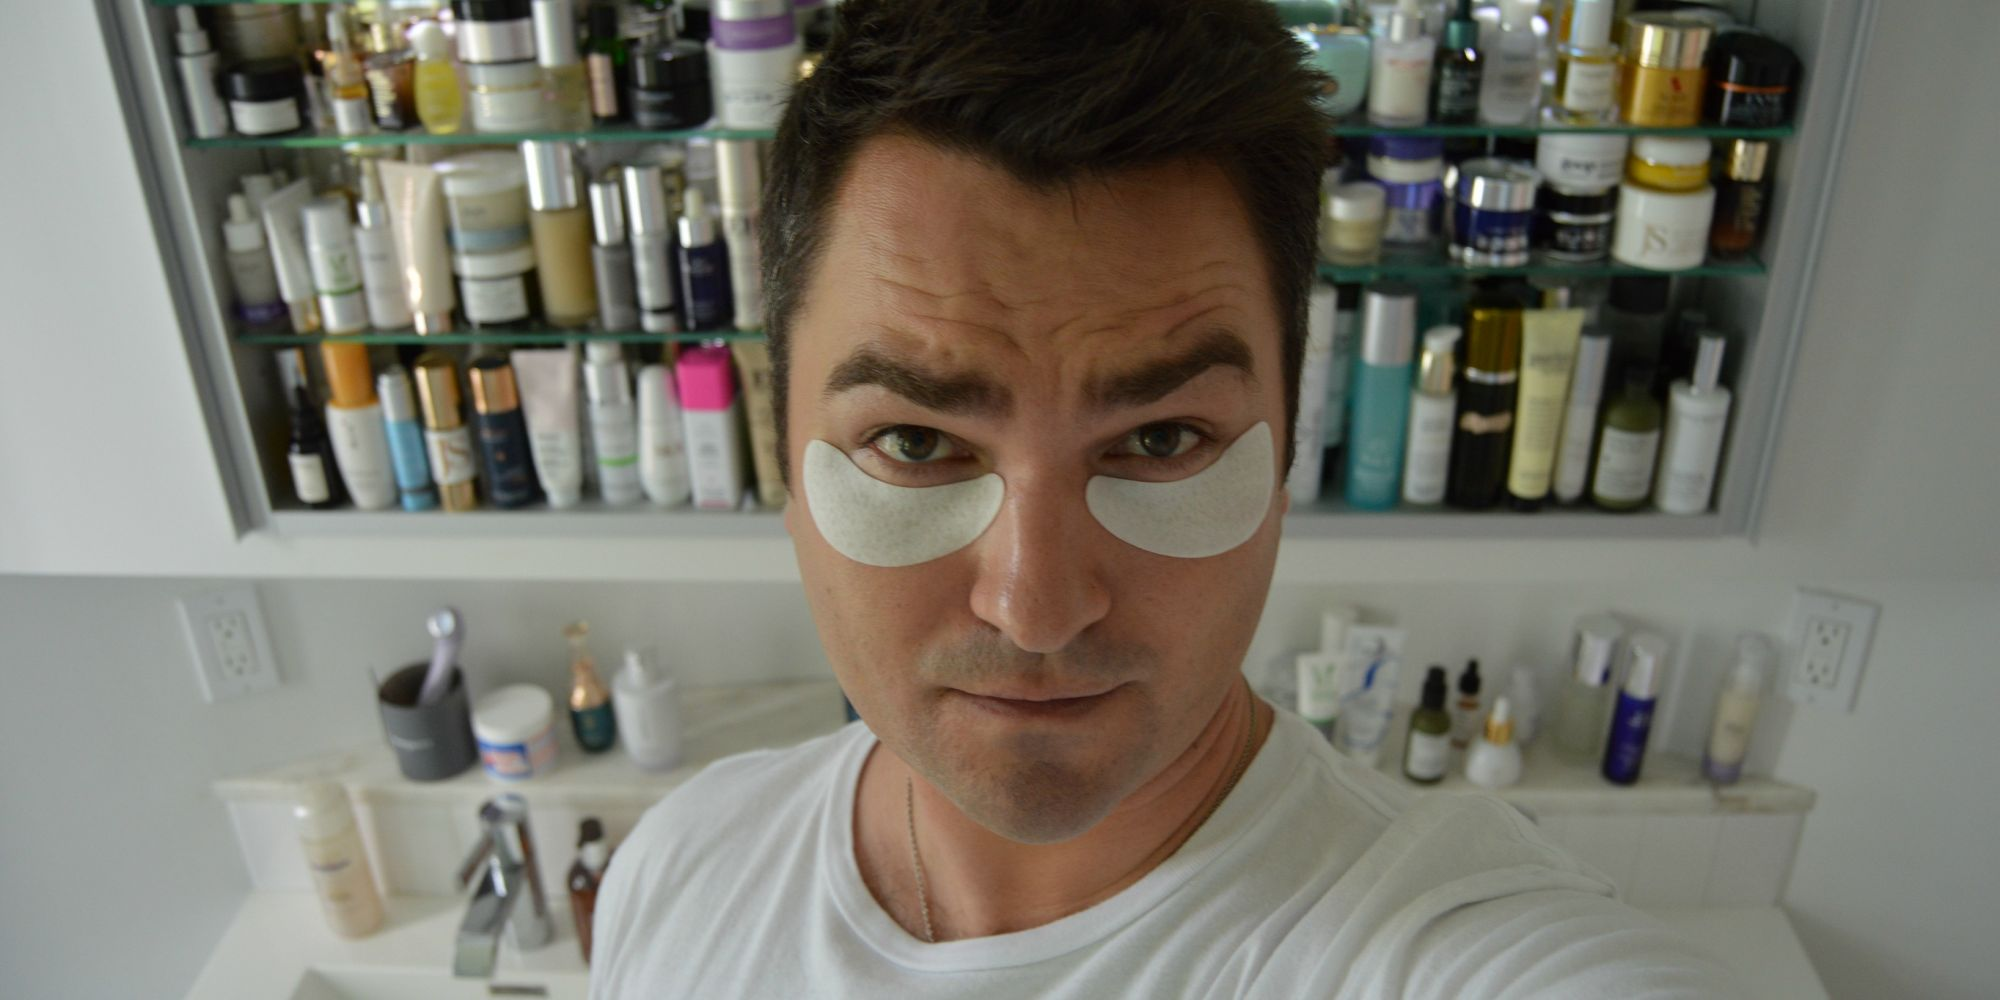 Stunning Product Shots, Simplified Skincare And Serious #Shelfie Envy With OMG Bart